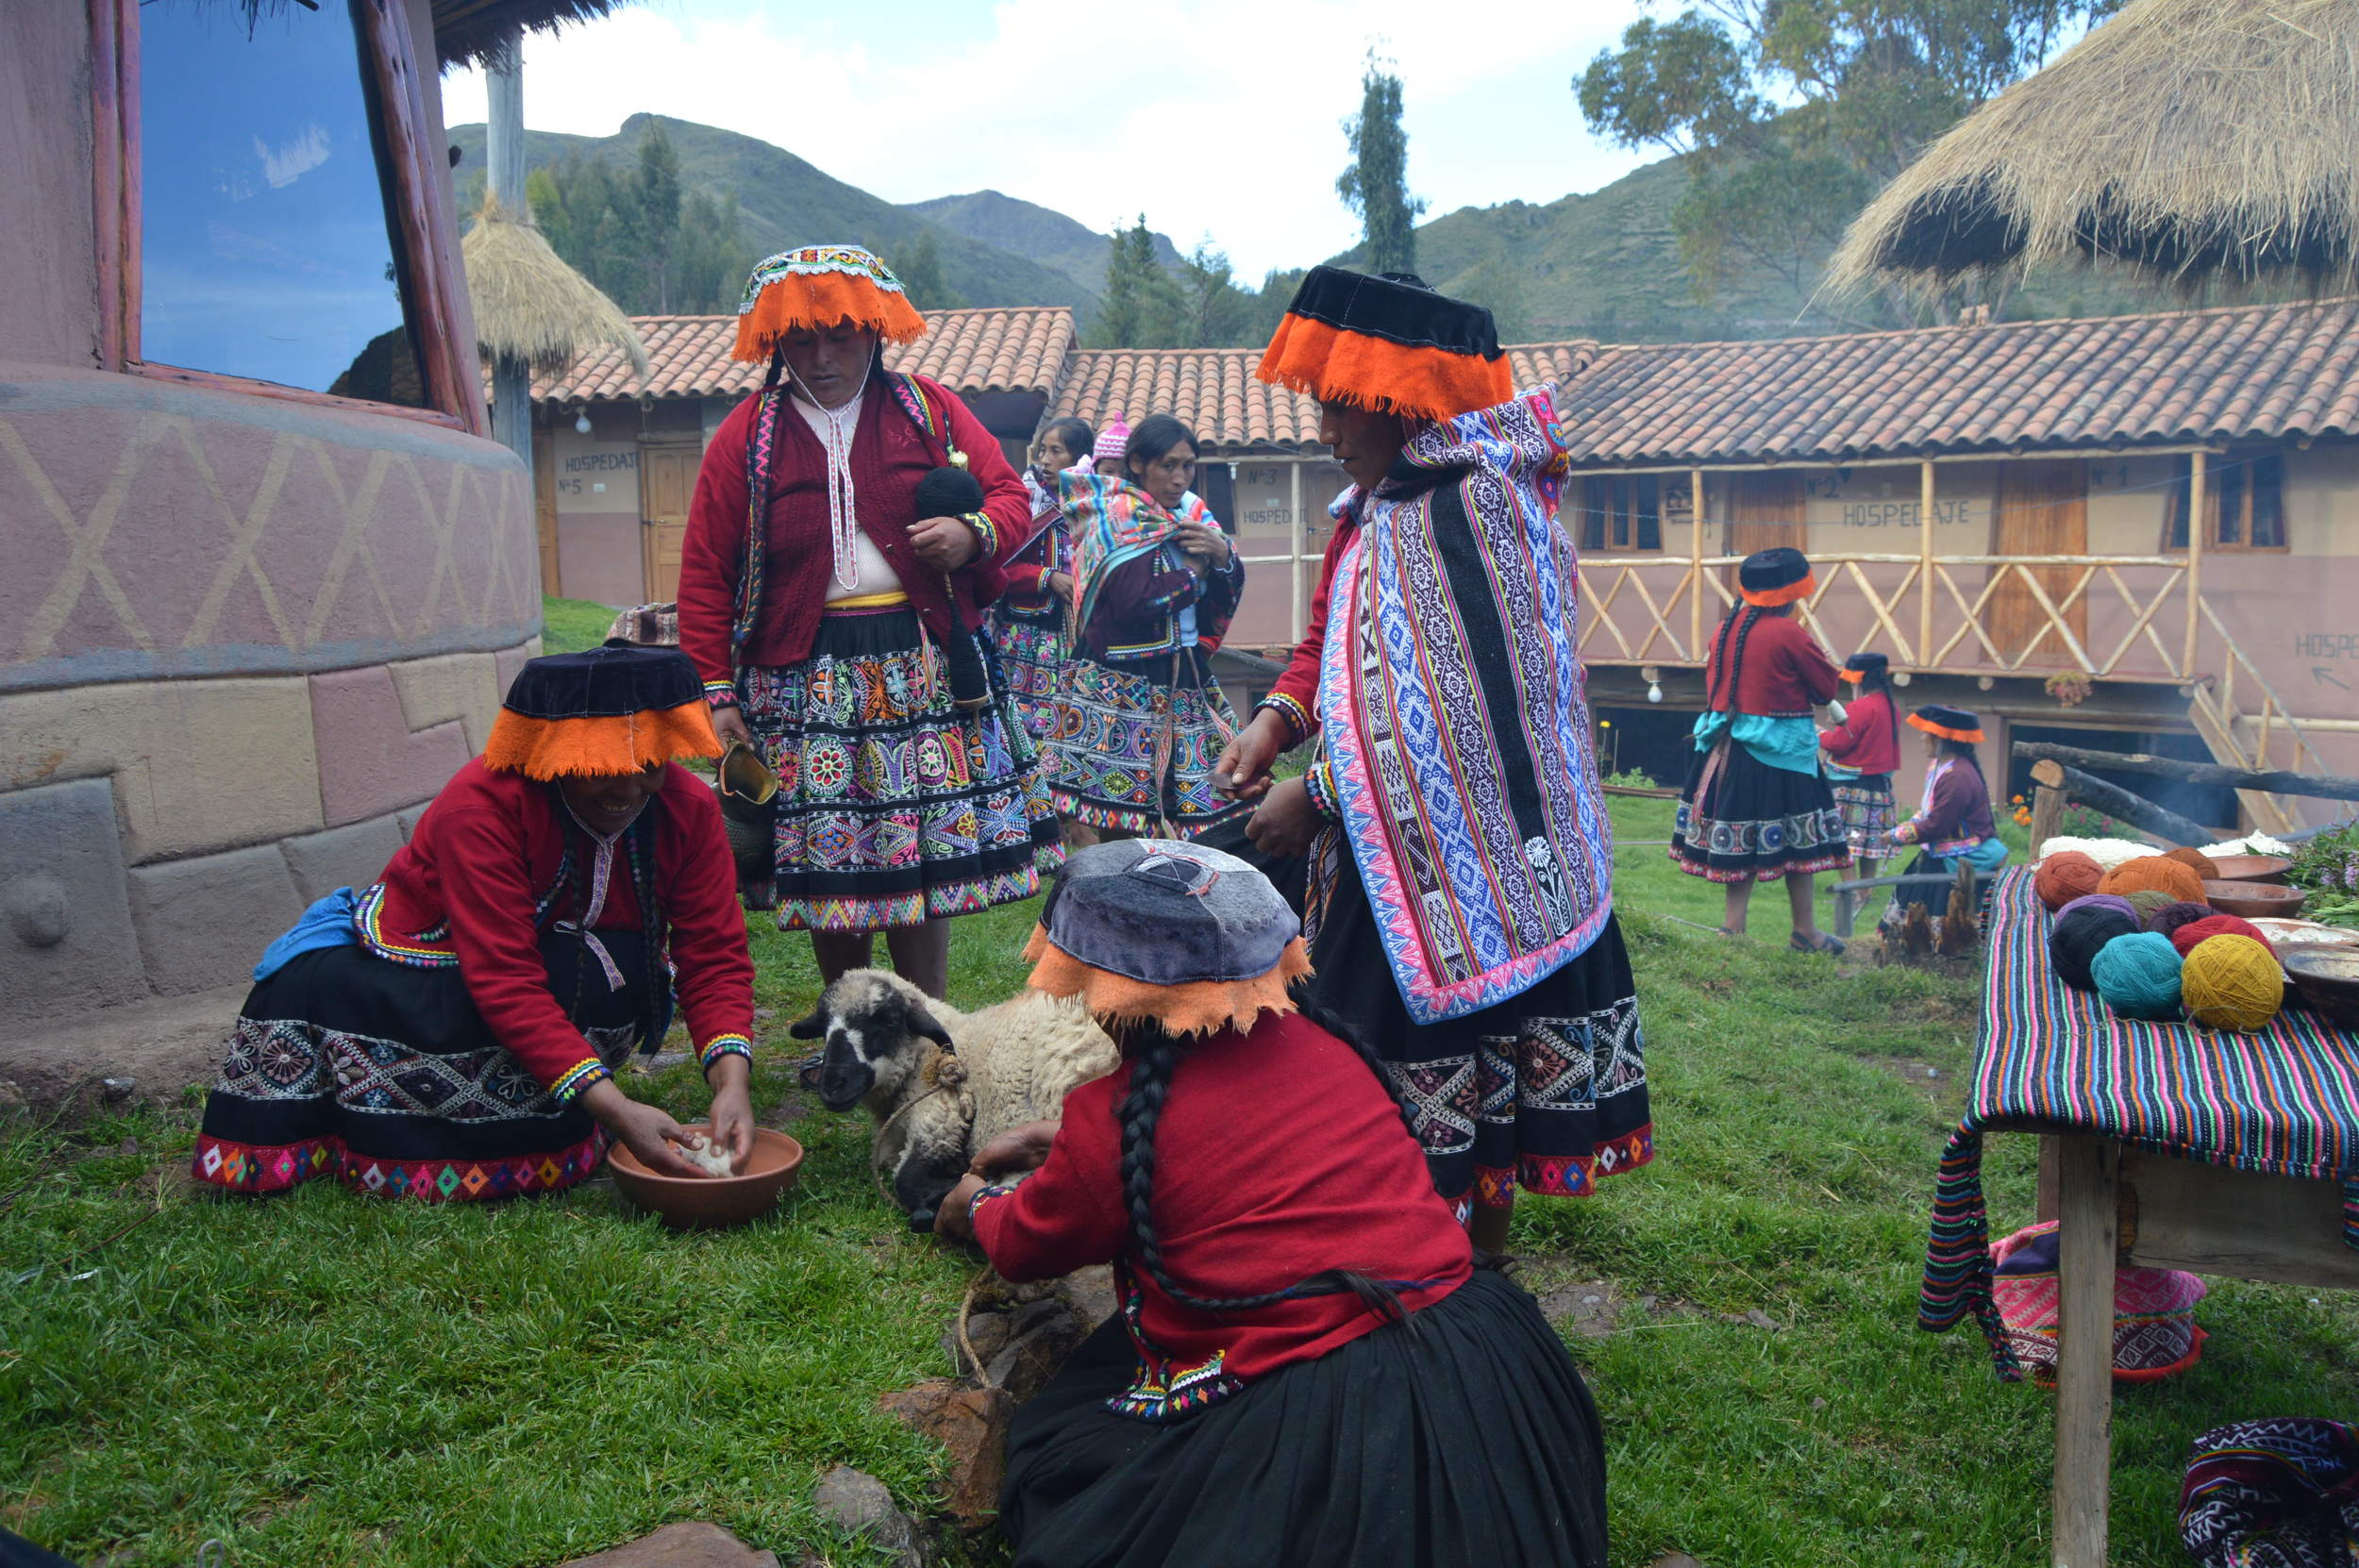 Demonstration and participation in the ancestral dyeing process, starting with the shearing of the llama or sheep